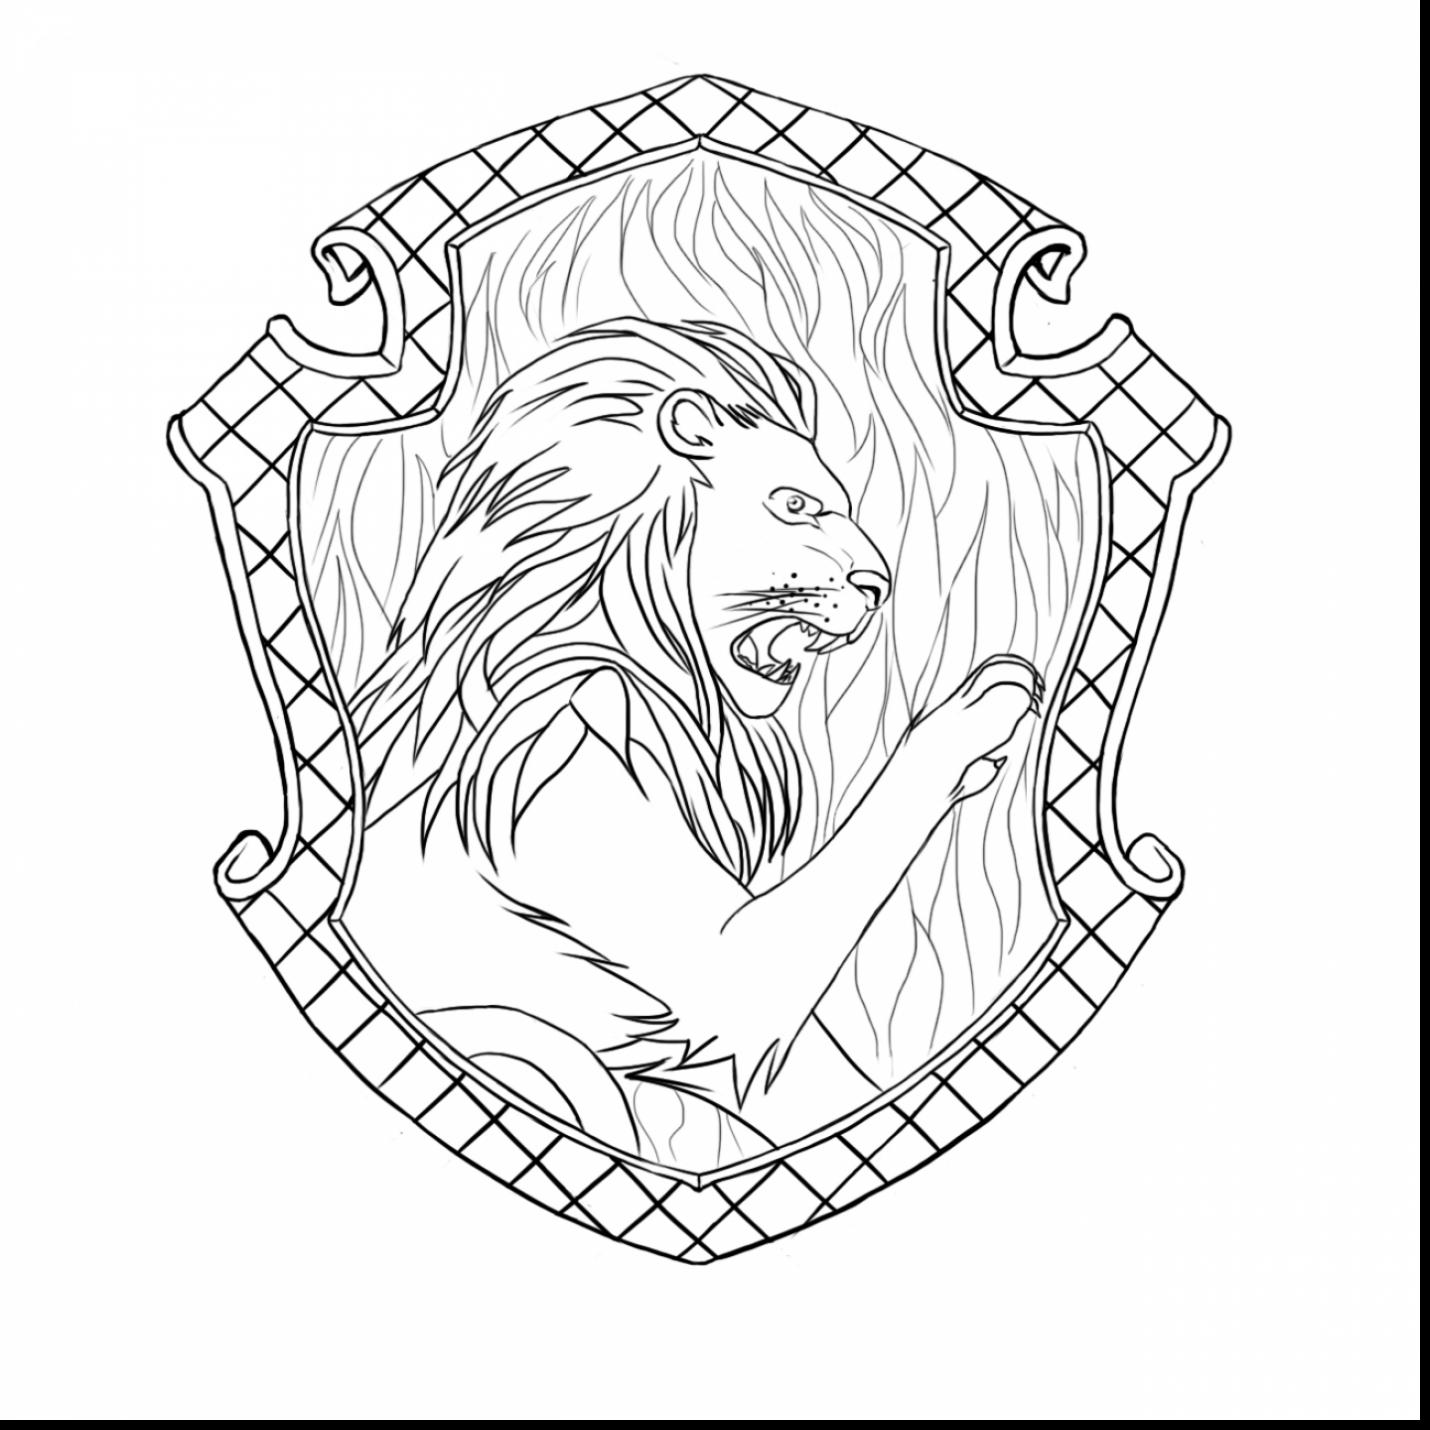 1430x1430 Marvelous Harry Potter Gryffindor Crest Coloring Page With Harry